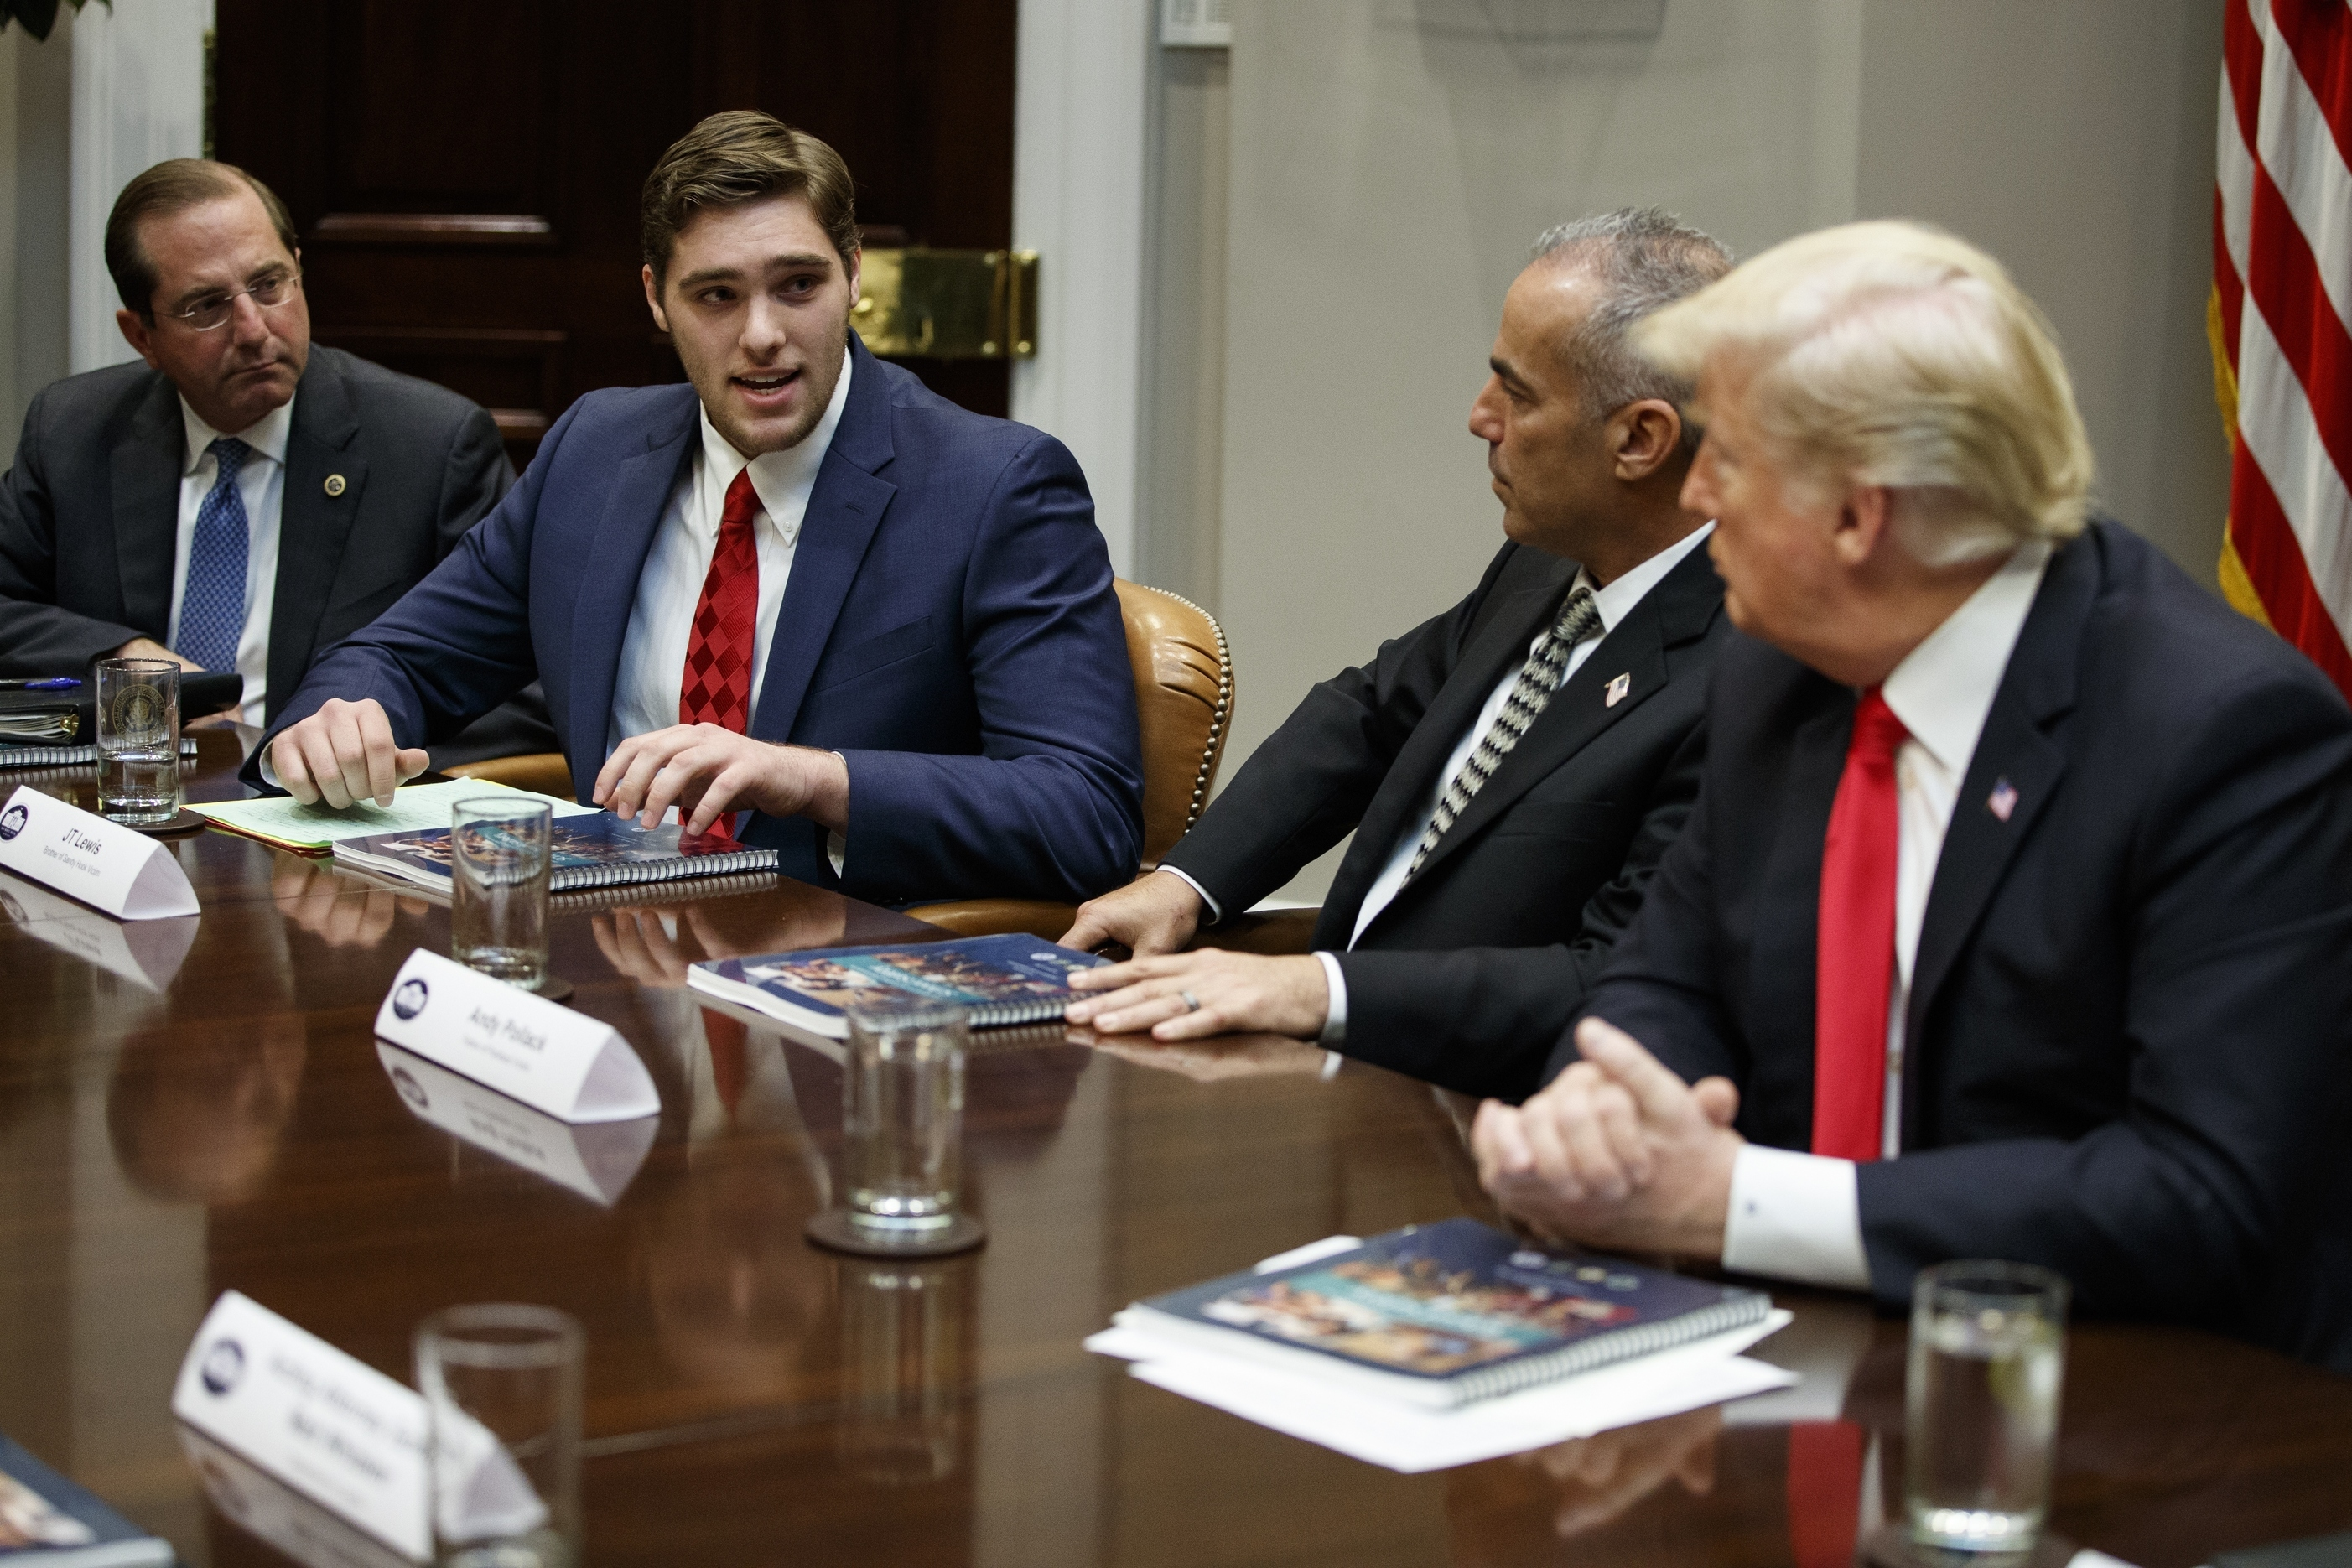 J.T. Lewis, brother of Sandy Hook victim Jesse Lewis, speaks to President Donald Trump and others during a roundtable discussion on the Federal Commission on School Safety report, in the Roosevelt Room of the White House in Washington on Dec. 18, 2018.